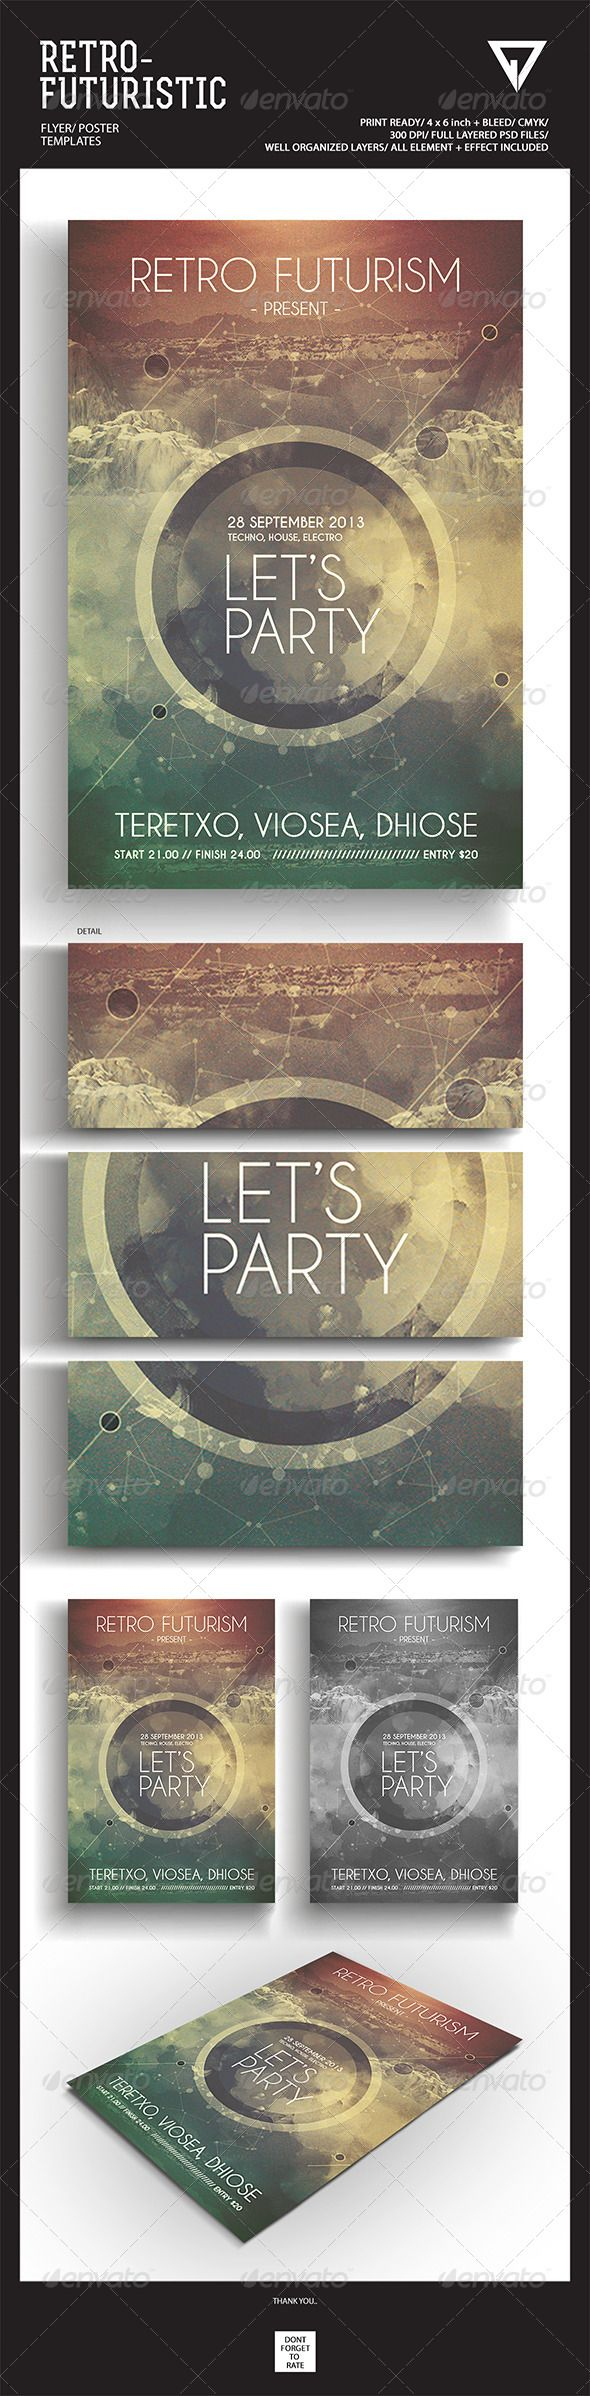 """Retro Futuristic Flyer/Poster #GraphicRiver Featured Flyers Flyer Artwork """"Let's Party"""" This flyer was designed to promote an Electro / Dubstep / Dance / Drum and Bass / Techno / House music event, such as a gig, concert, festival, dj set, party or weekly"""